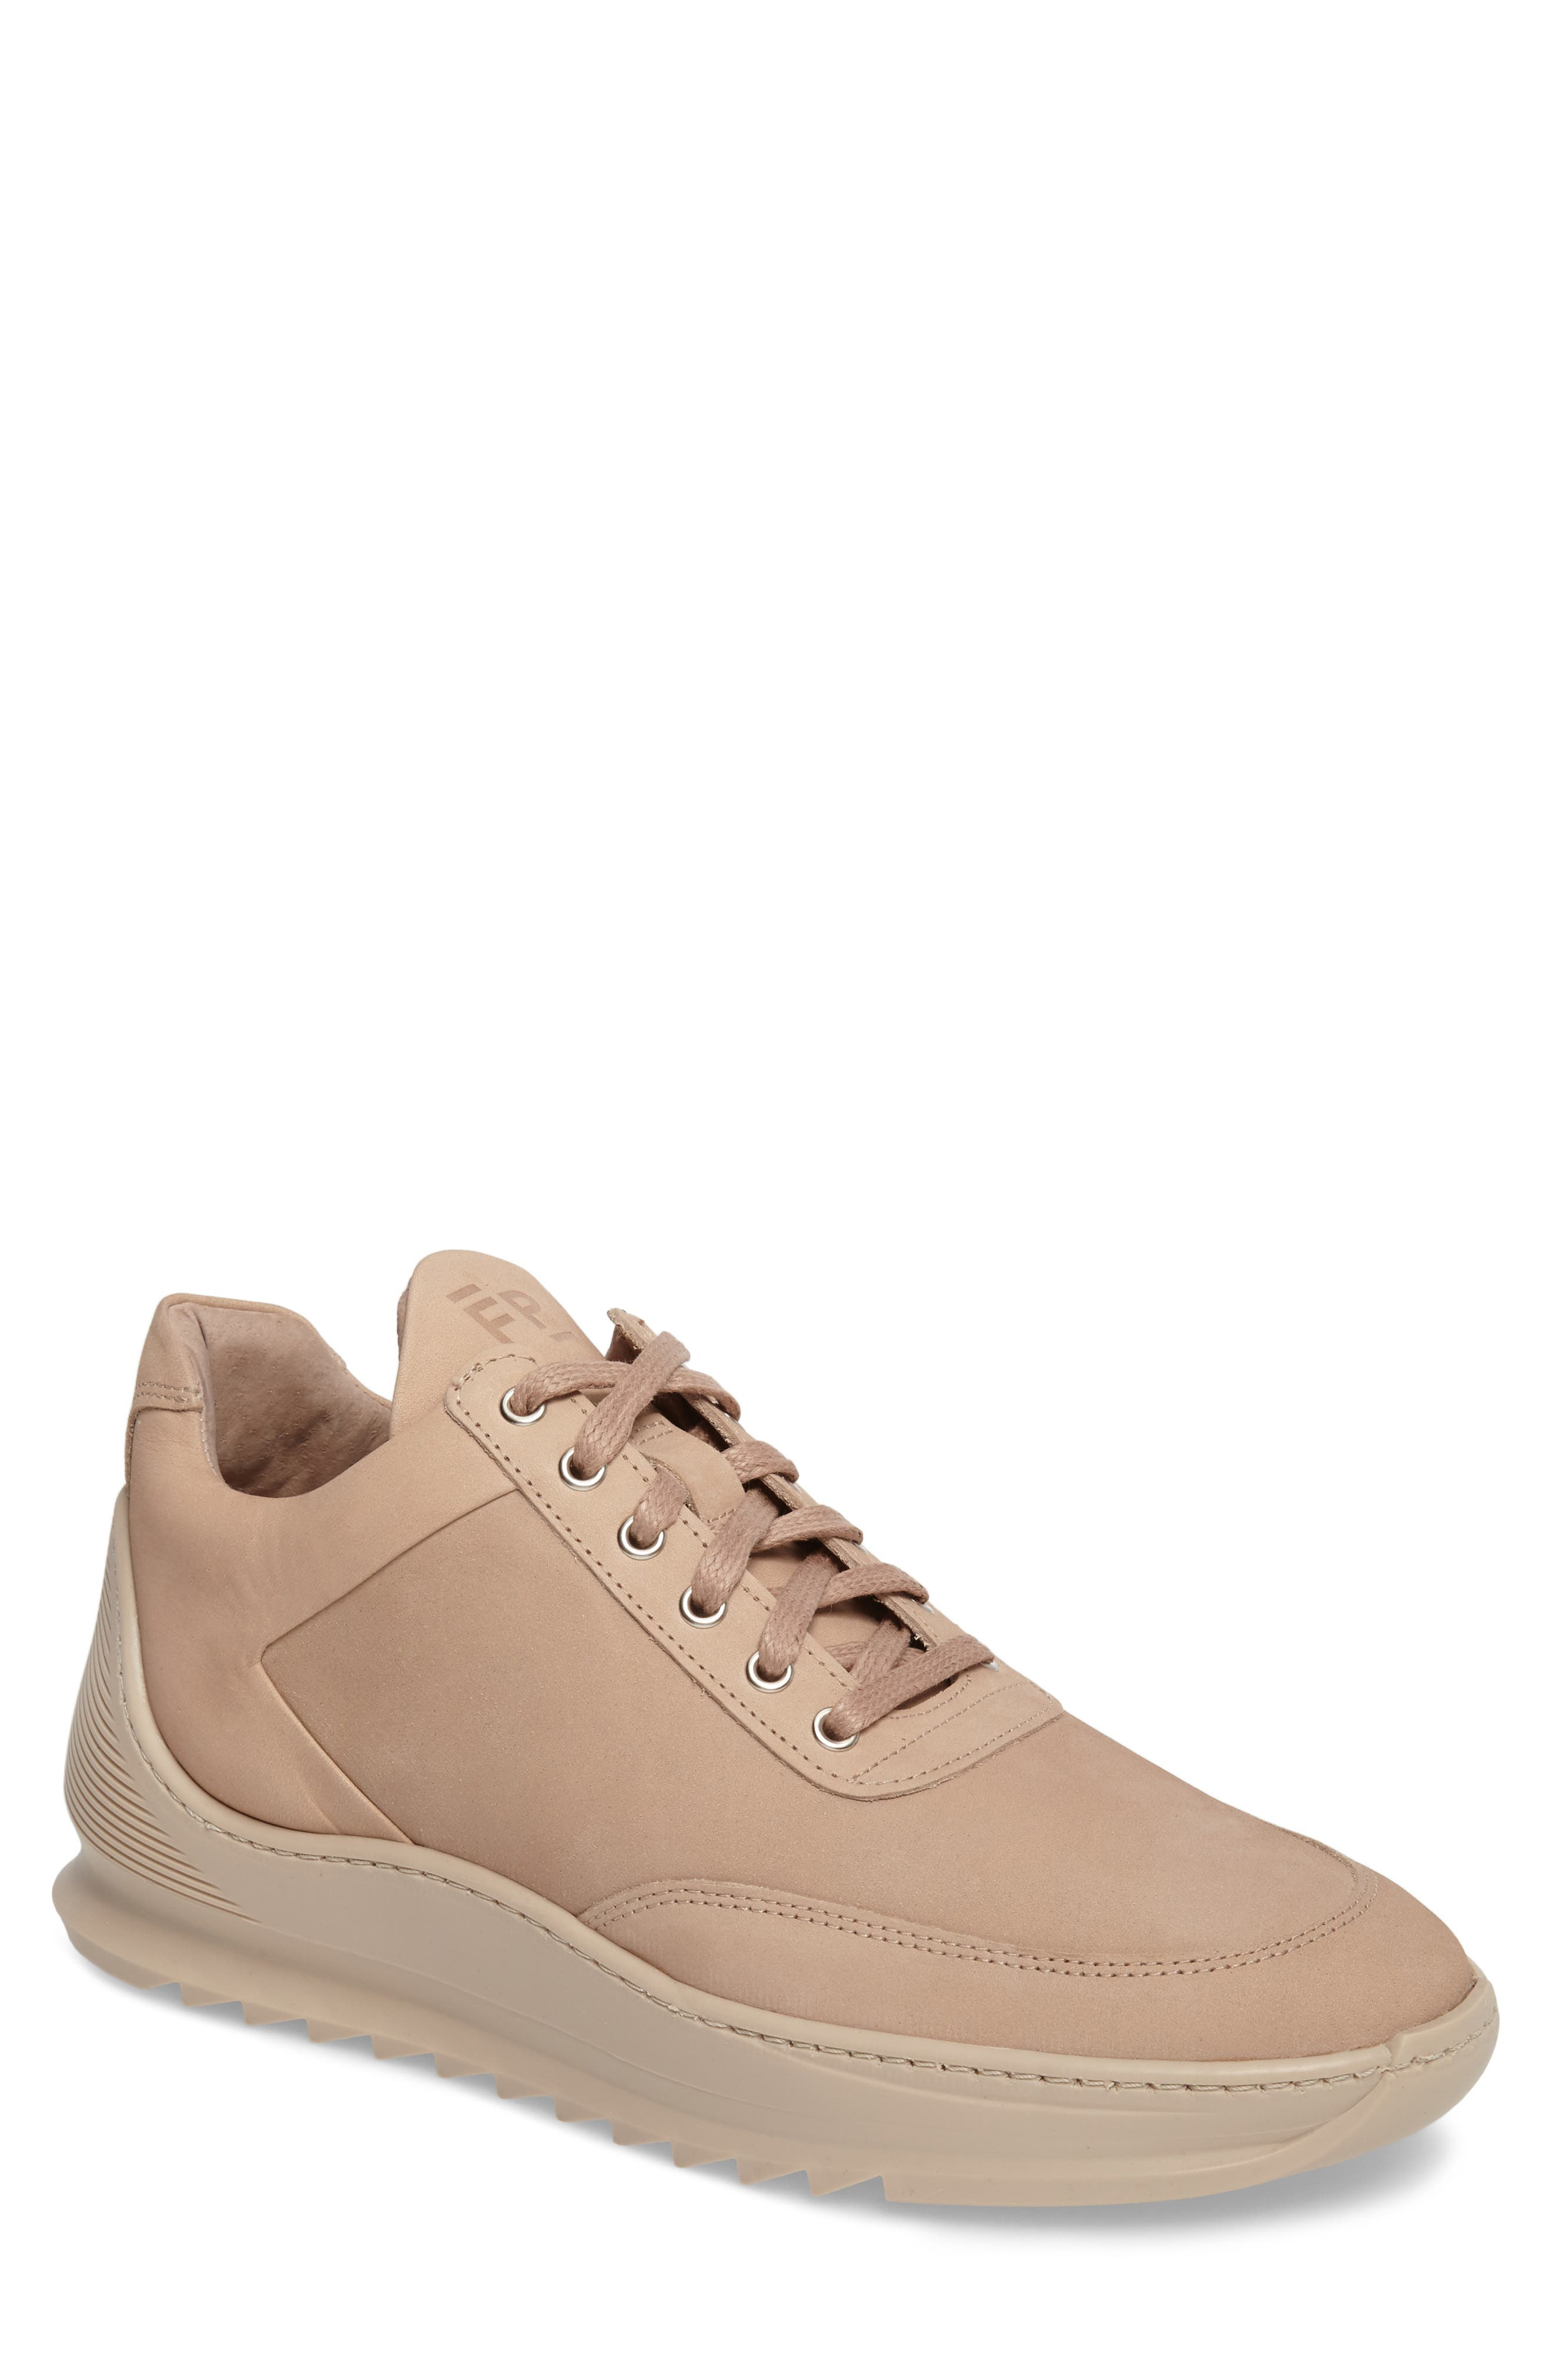 Low-Top Sneaker,                             Main thumbnail 1, color,                             250